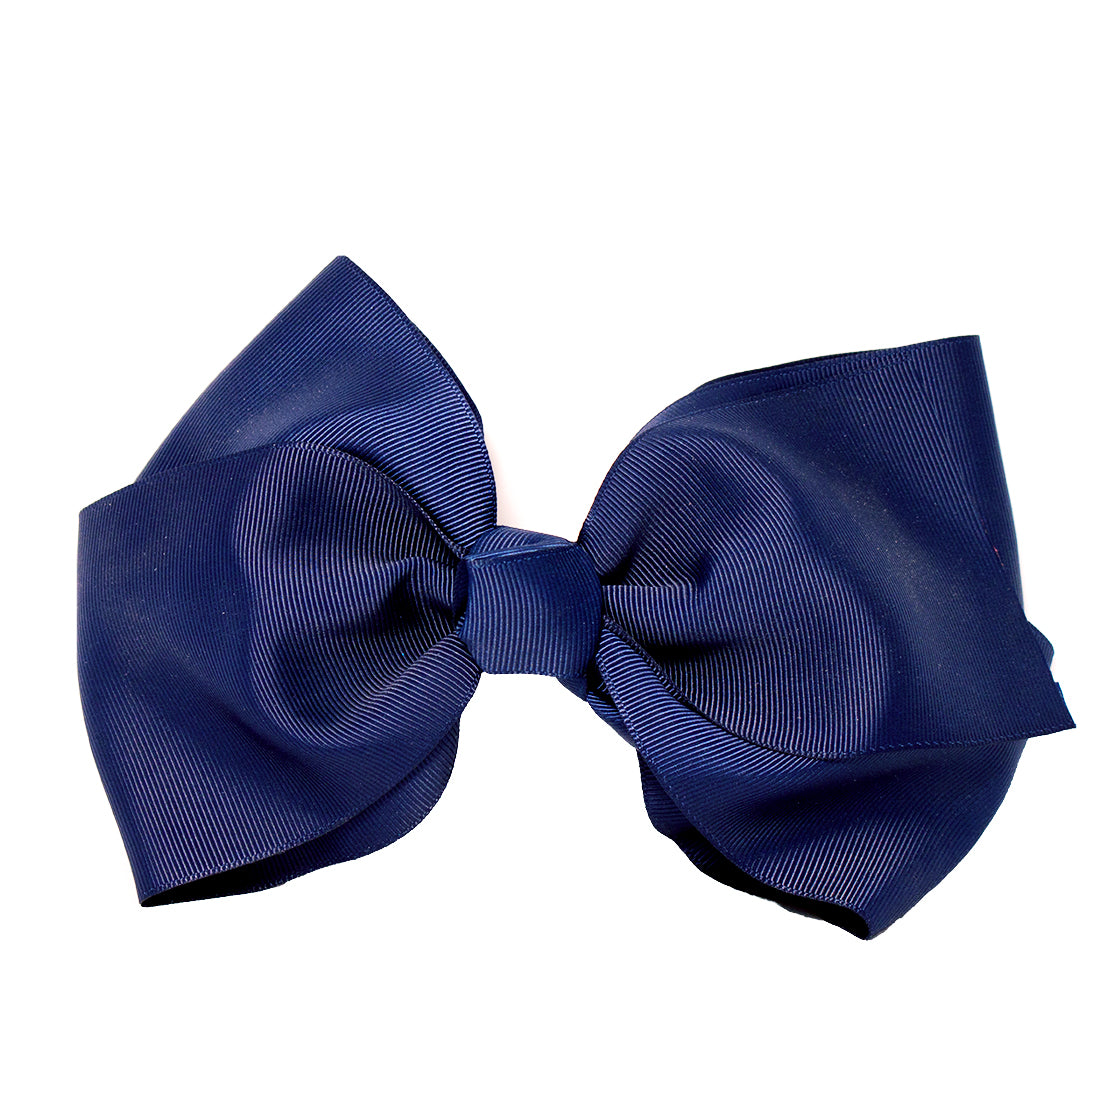 Mia Spirit Extra Large Grosgrain Bow Barrette - Navy blue color - designed by #MiaKaminski of Mia Beauty